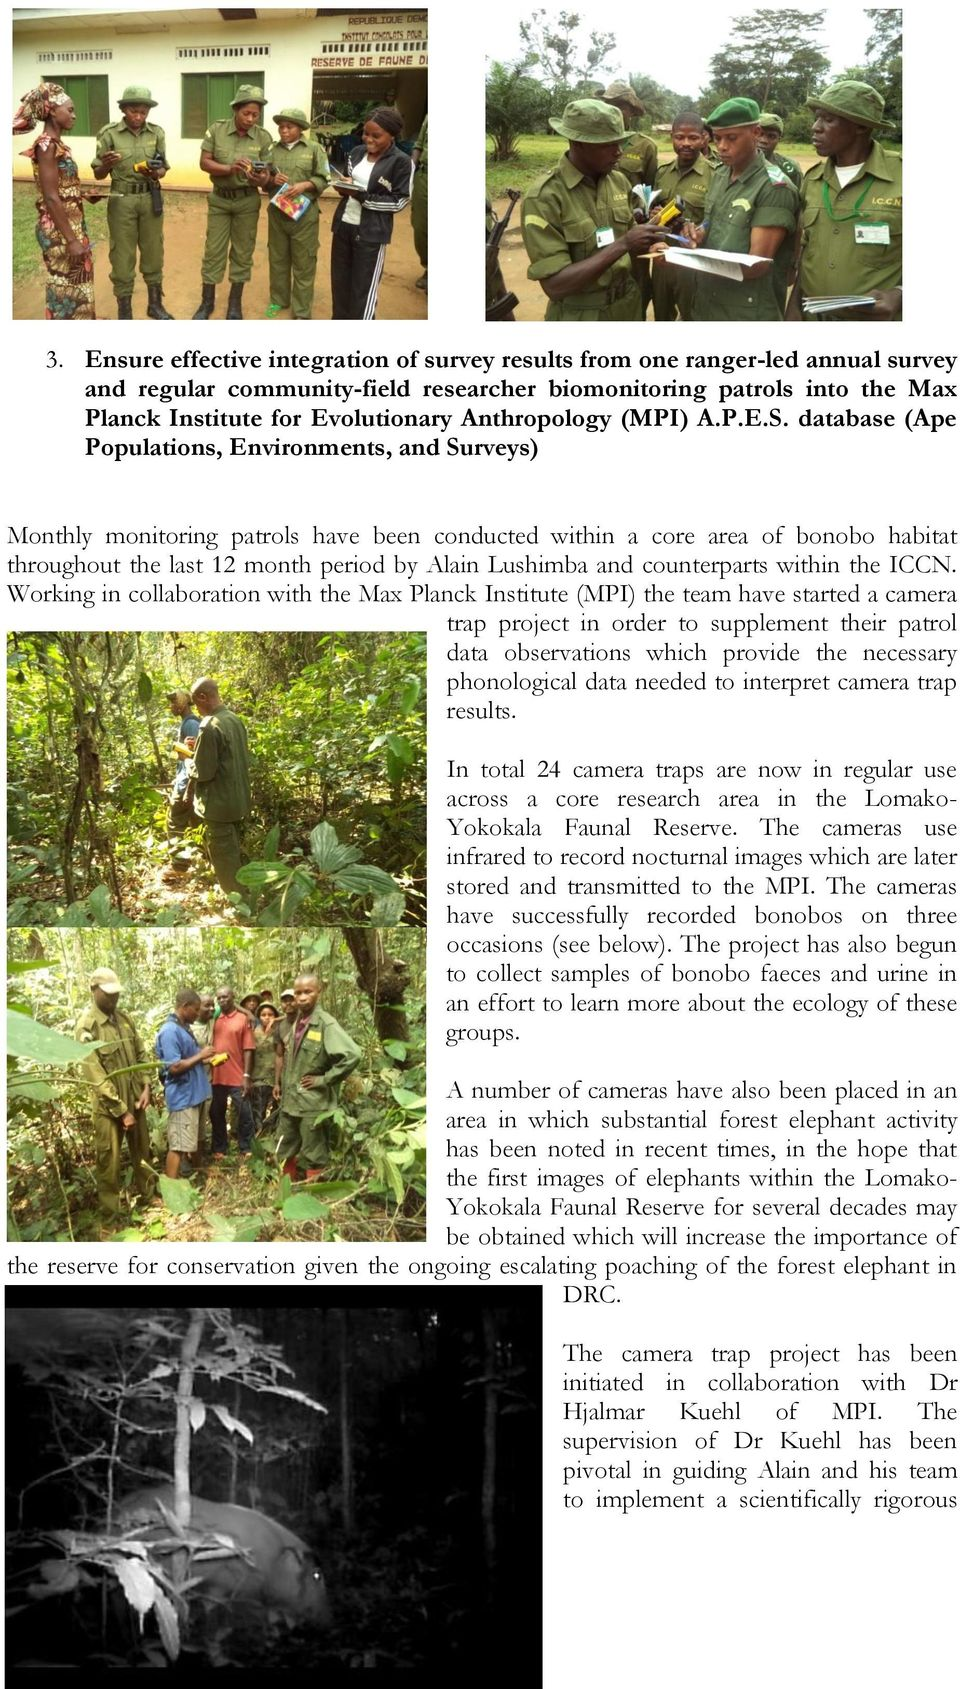 database (Ape Populations, Environments, and Surveys) Monthly monitoring patrols have been conducted within a core area of bonobo habitat throughout the last 12 month period by Alain Lushimba and